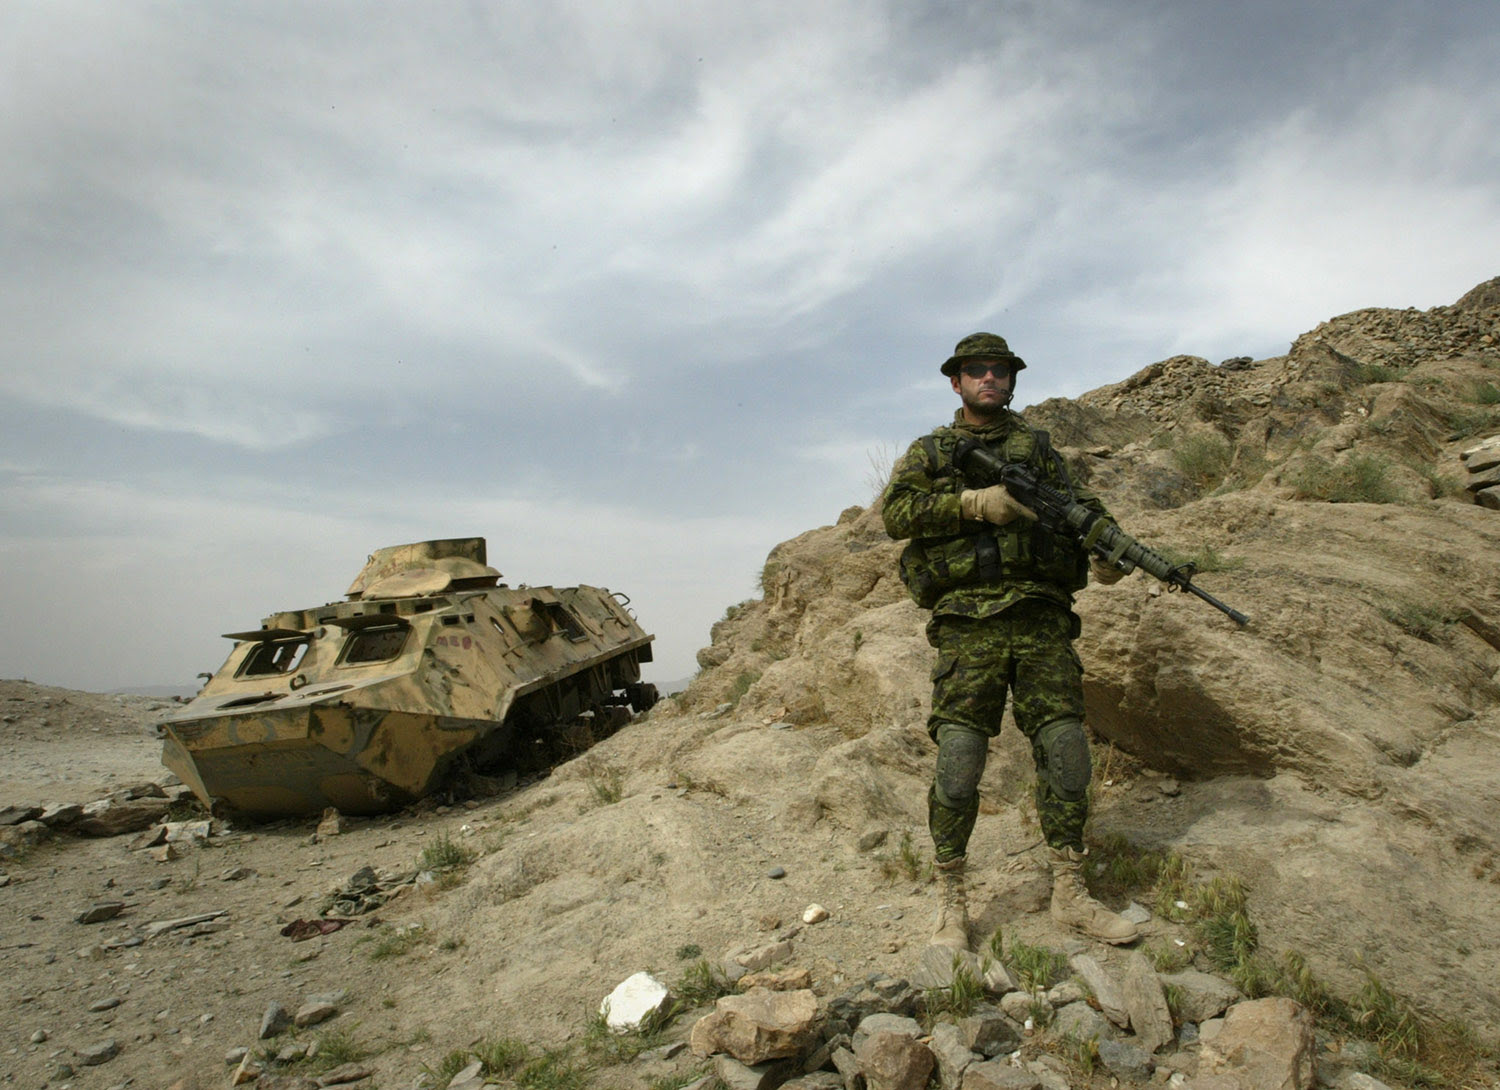 The Afghanistan Papers: Washington Post uncovers secret history of the Afghan war